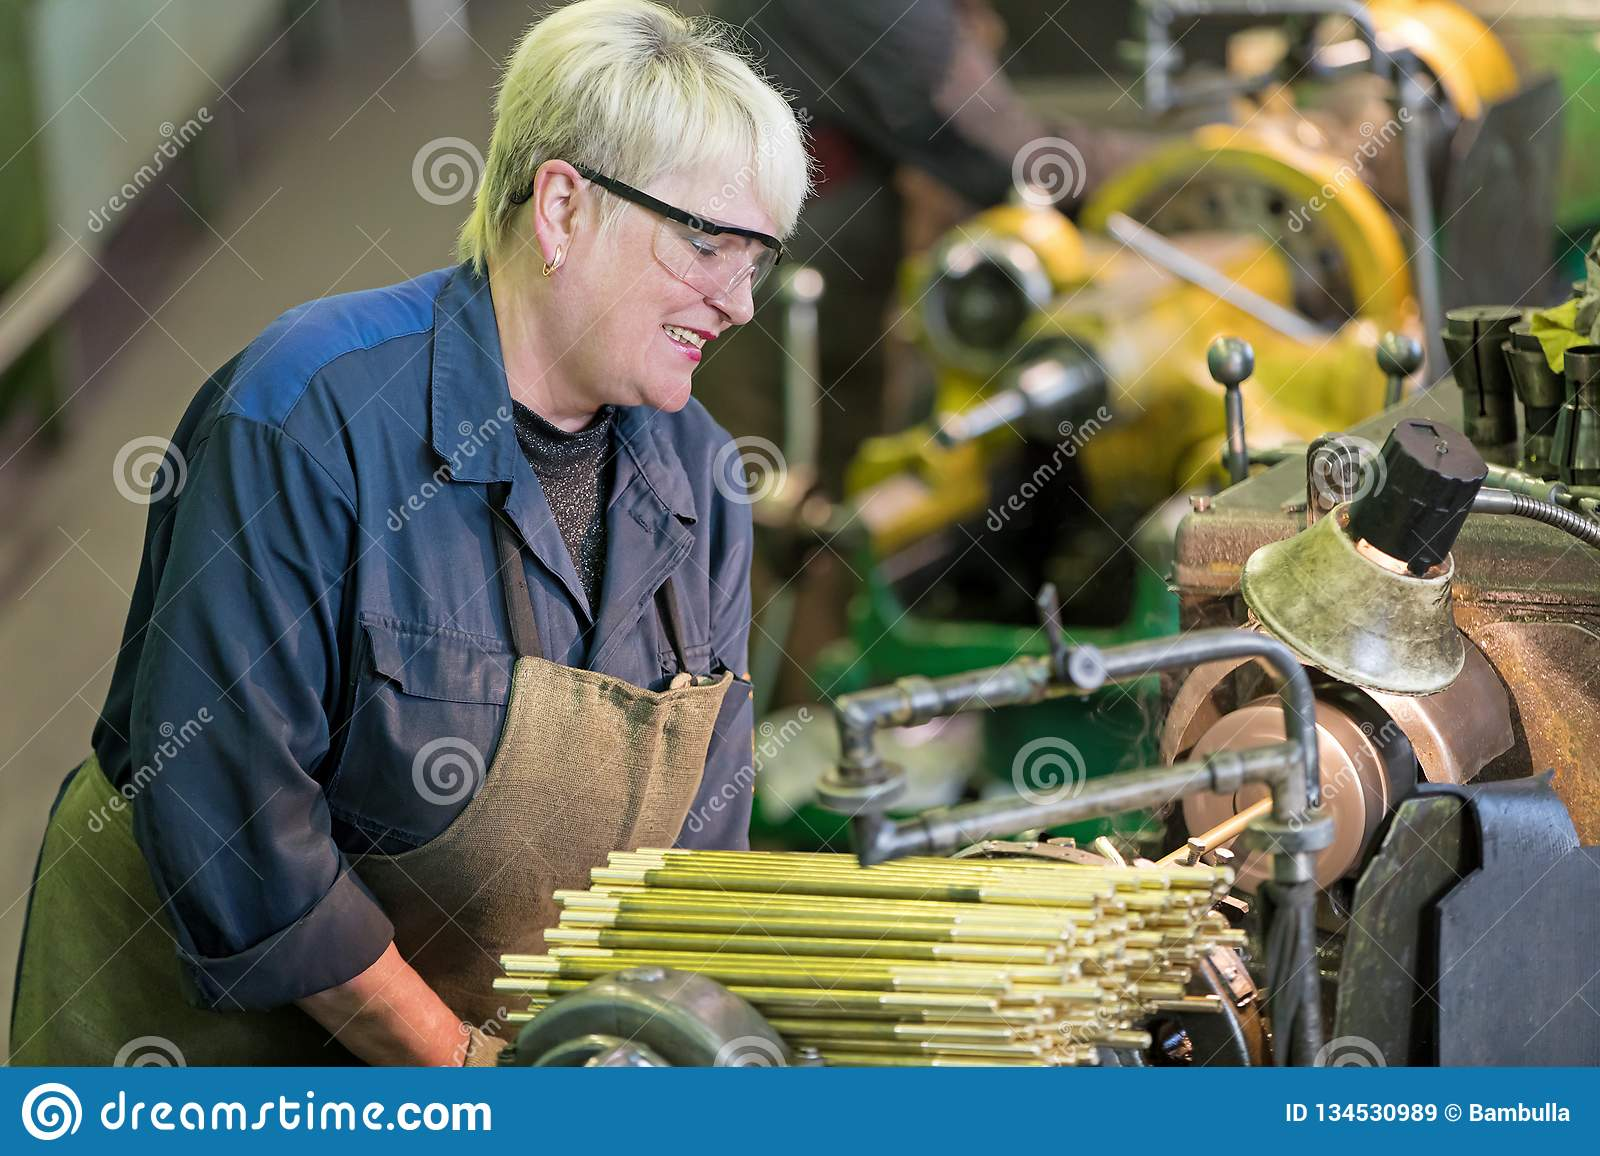 Factory Woman Turner Working On Workshop Lathe Machine Stock Image